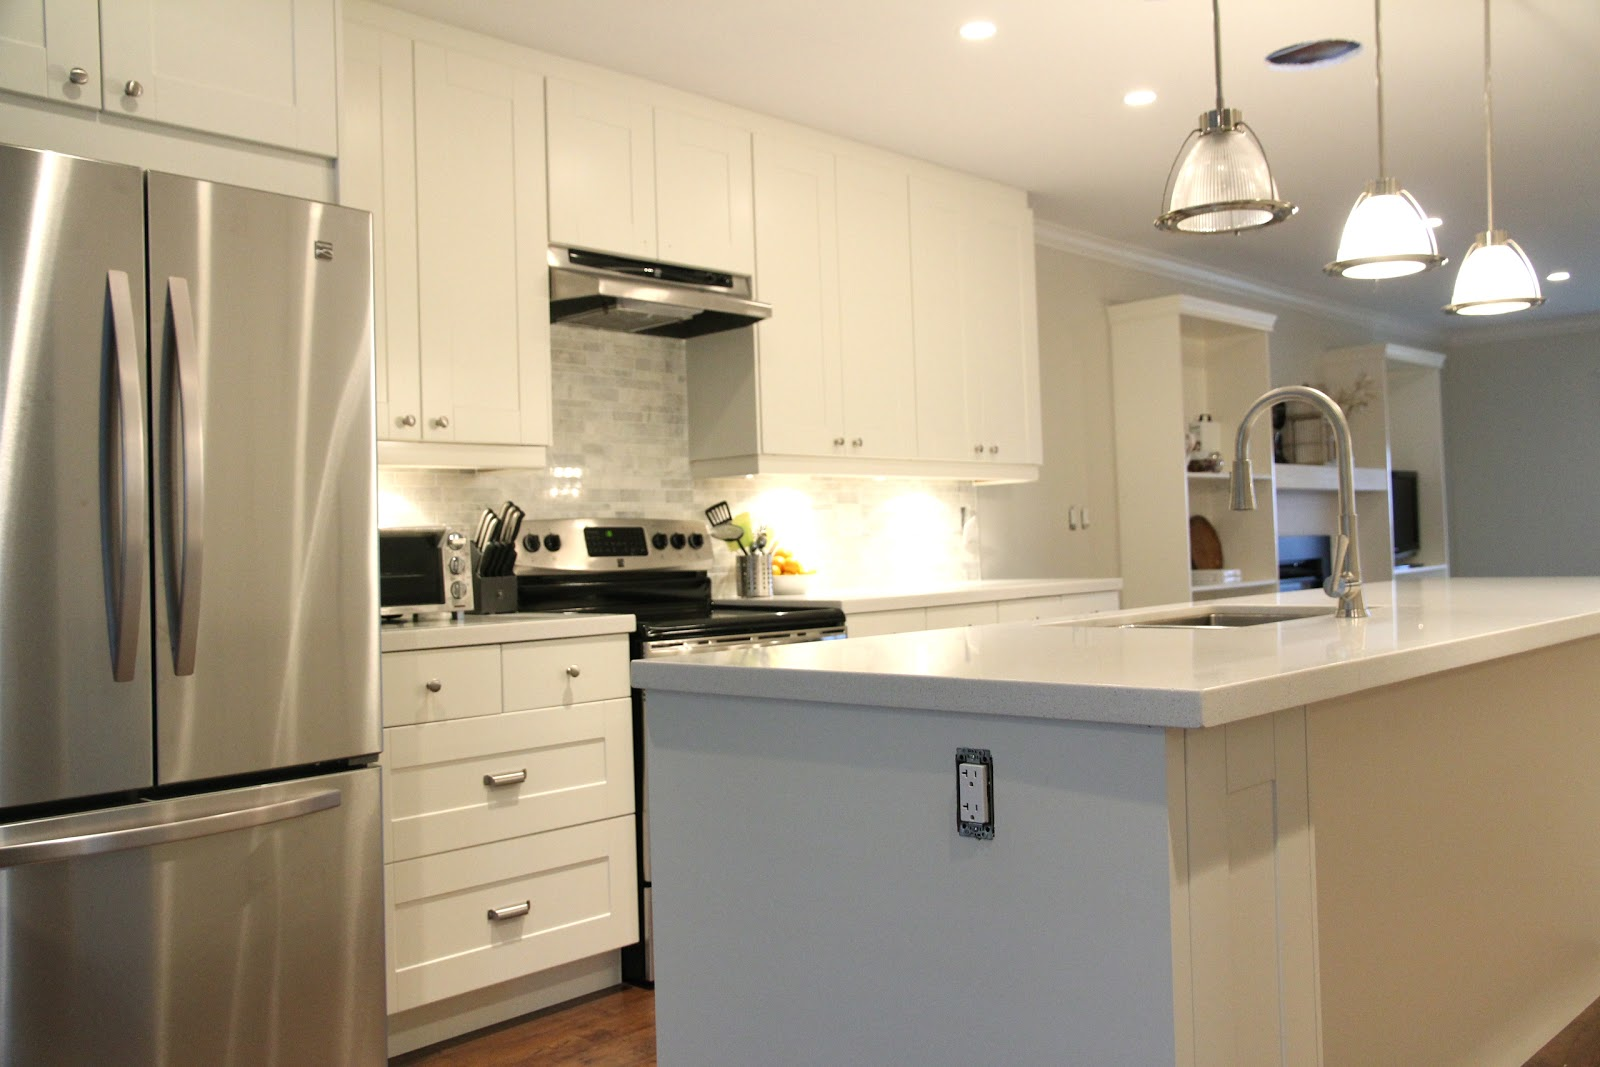 Kitchen Resurface Cabinets Cost Of Kitchen Cabinet Refacing